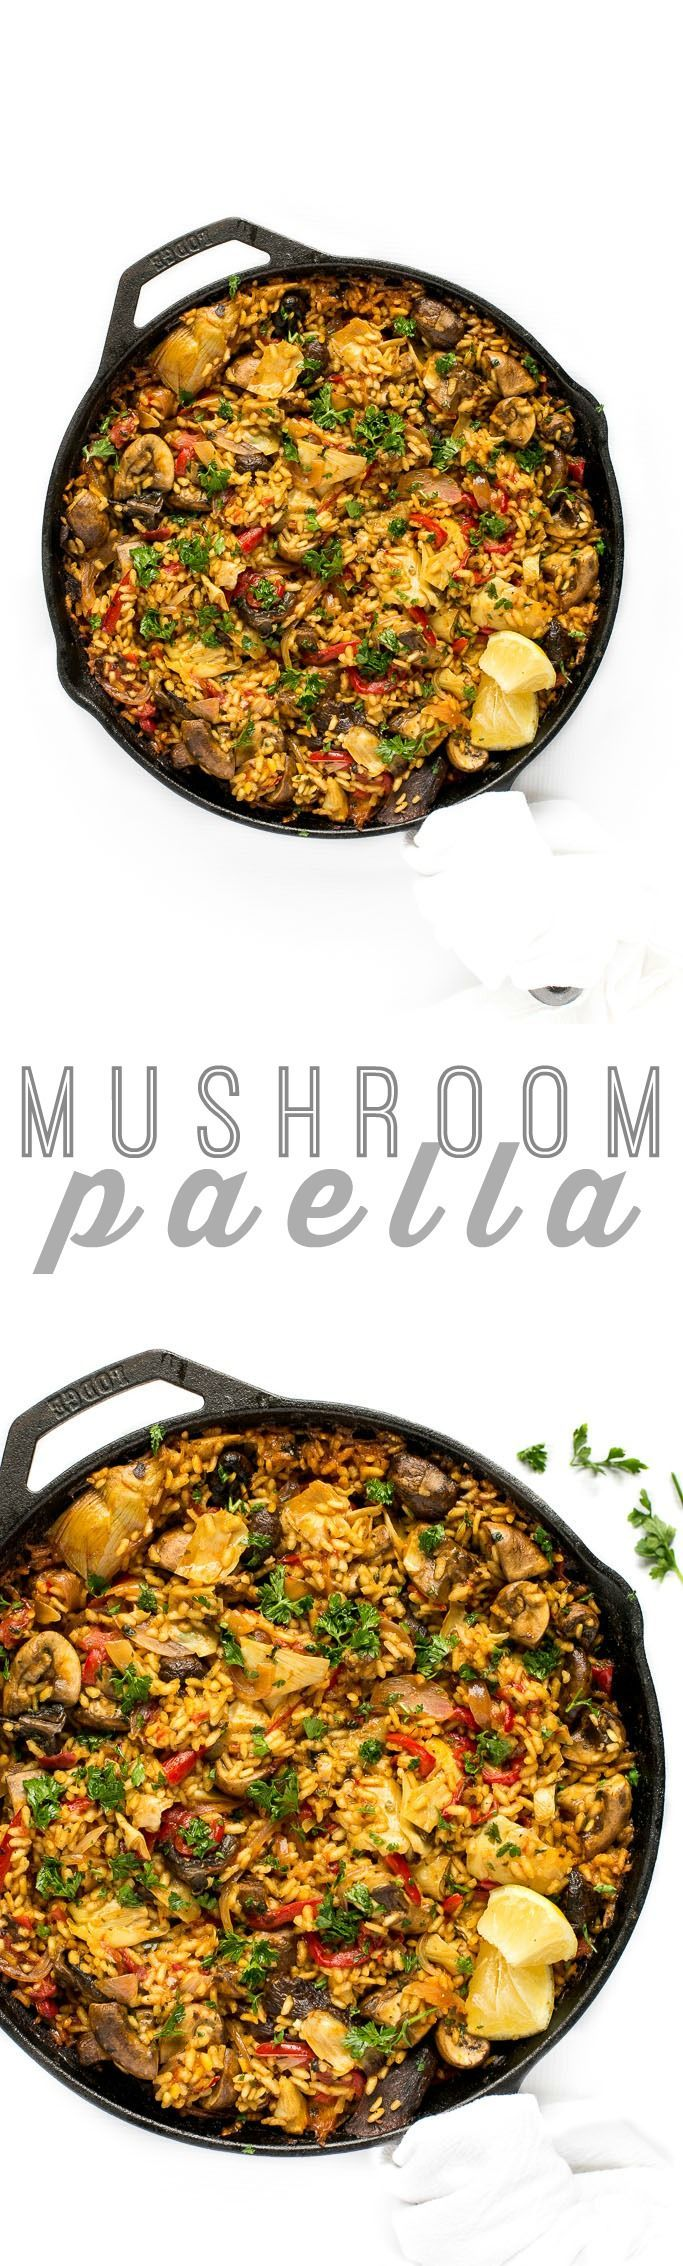 There are few dishes as flavor-packed, comforting, and vibrant as paella. This vegan mushroom paella packs a rich punch of flavor thanks to a sofrito base, hearty mushrooms, and artichoke hearts. It's cooked to perfection with lots of tender rice at the center of the skillet and that delectable golden-brown paella crust at the edges.